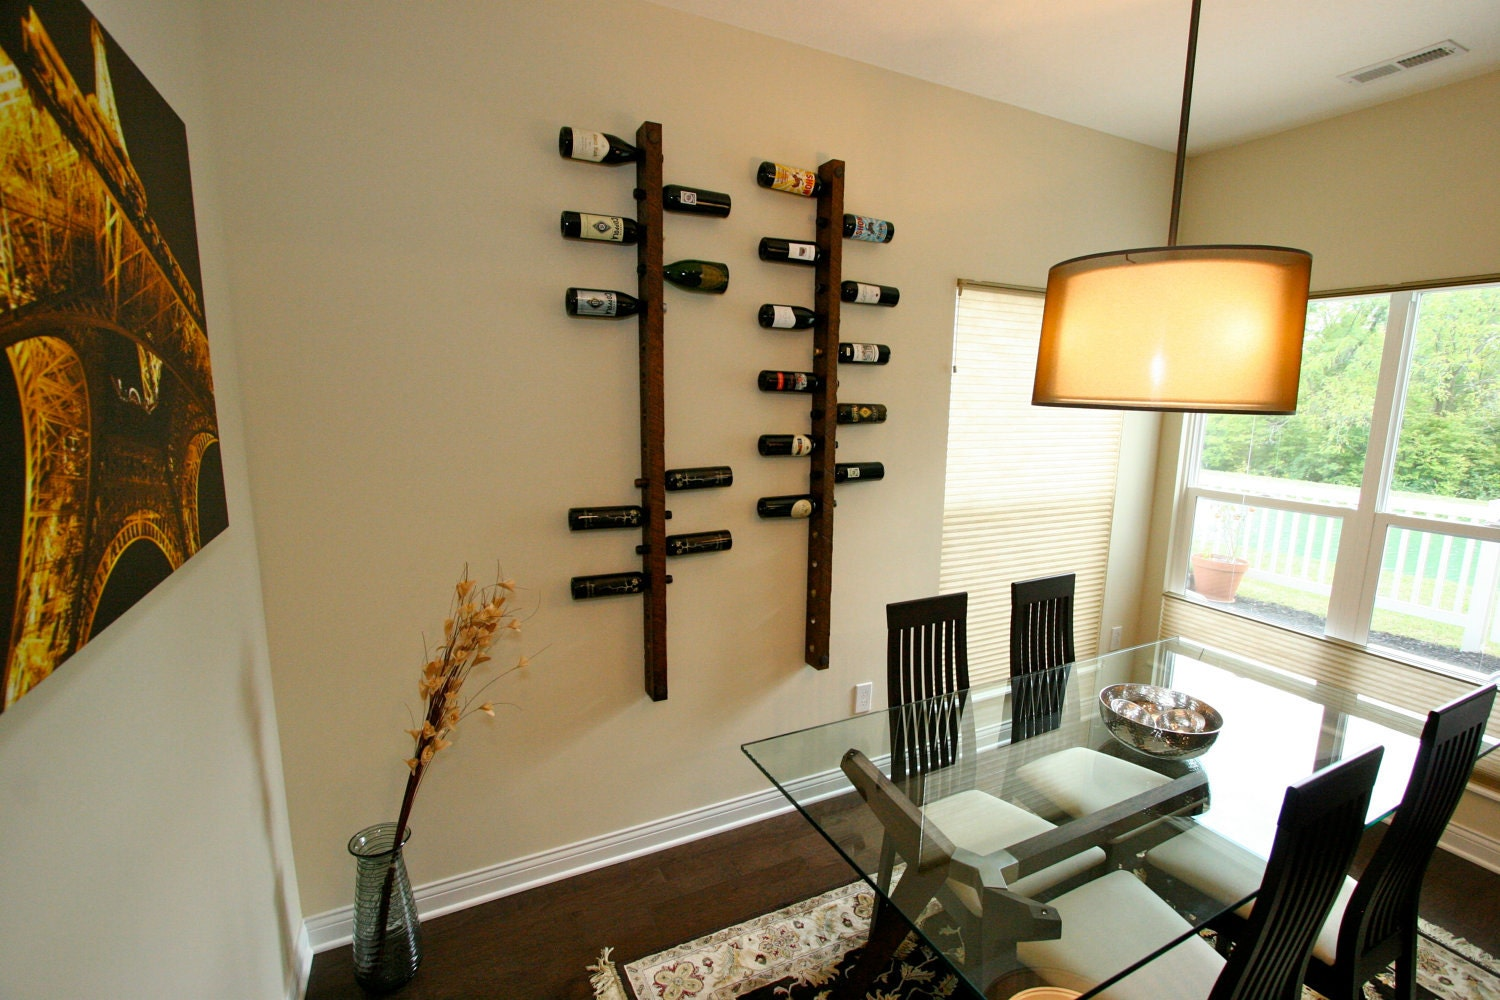 dining room wall decor 16 bottle wine racks wine rack wall. Black Bedroom Furniture Sets. Home Design Ideas